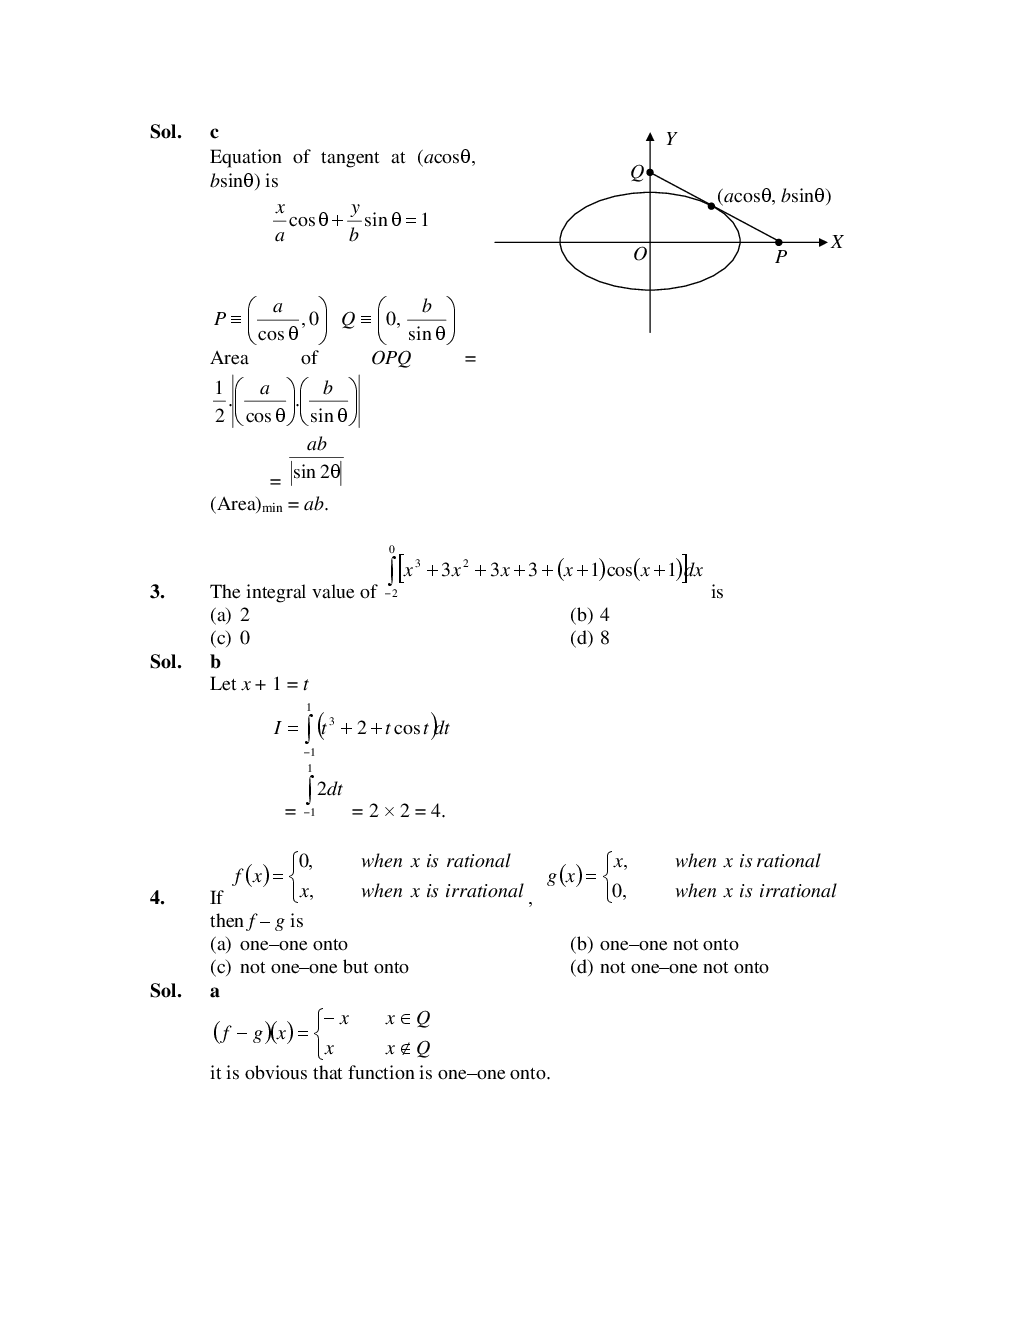 IIT-JEE Screening Solved Question Papers (Physics,Chemistry,Maths) 2004-2005 - Page 3